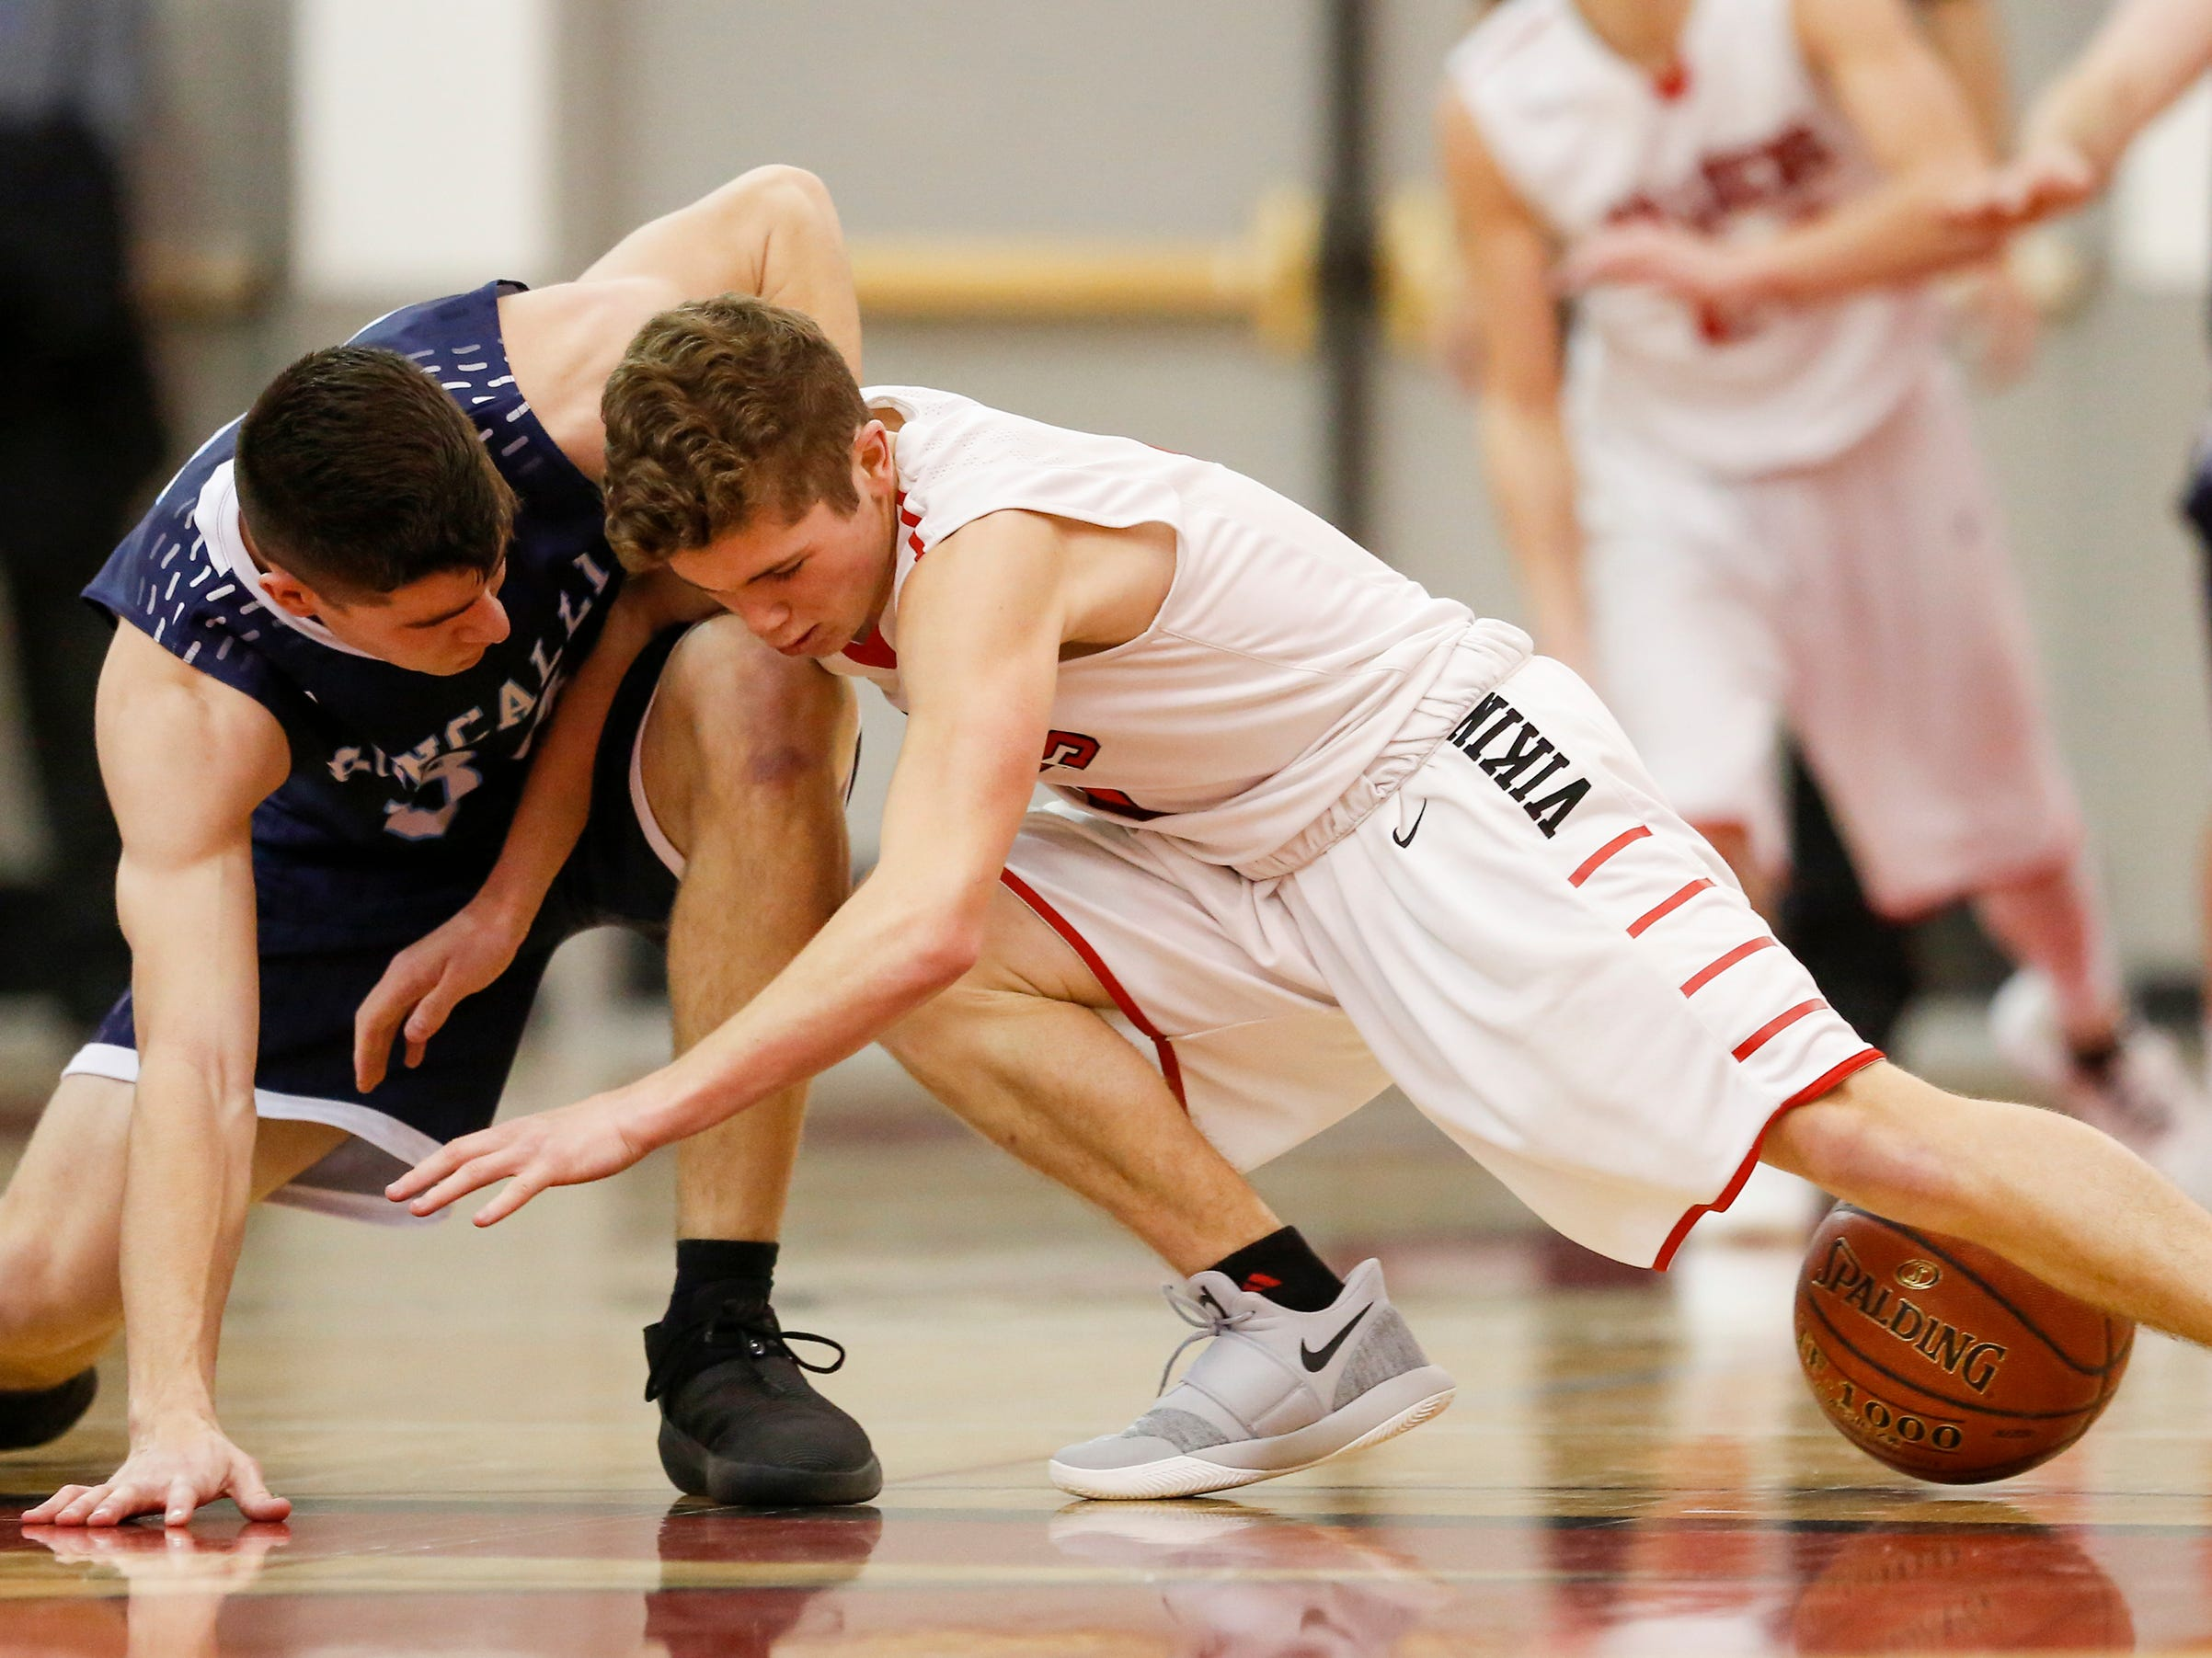 Roncalli's Ian Behringer (34) battles Valders' Nate Griepentrog (4) for a loose ball during an Eastern Wisconsin Conference game at Valders High School Thursday, January 3, 2019, in Valders, Wis. Joshua Clark/USA TODAY NETWORK-Wisconsin